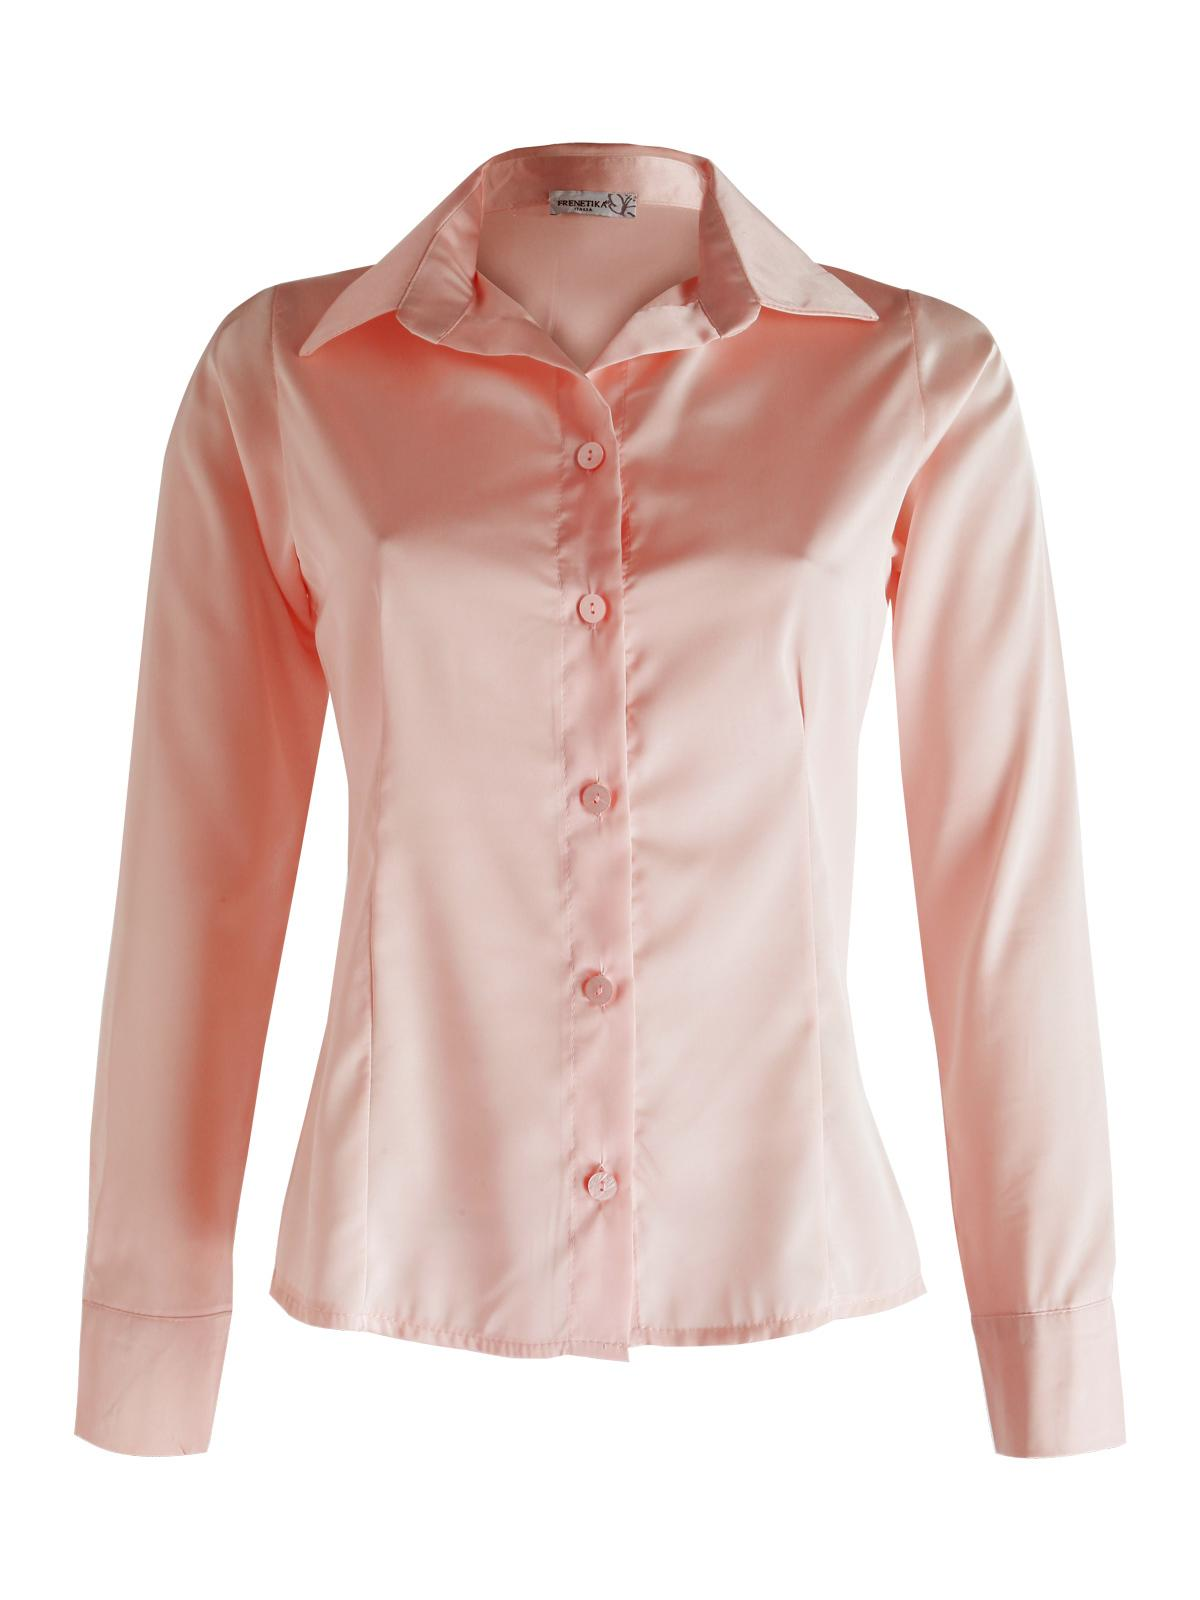 the latest 8d224 f5213 Camicia elegante effetto raso frenetika | MecShopping